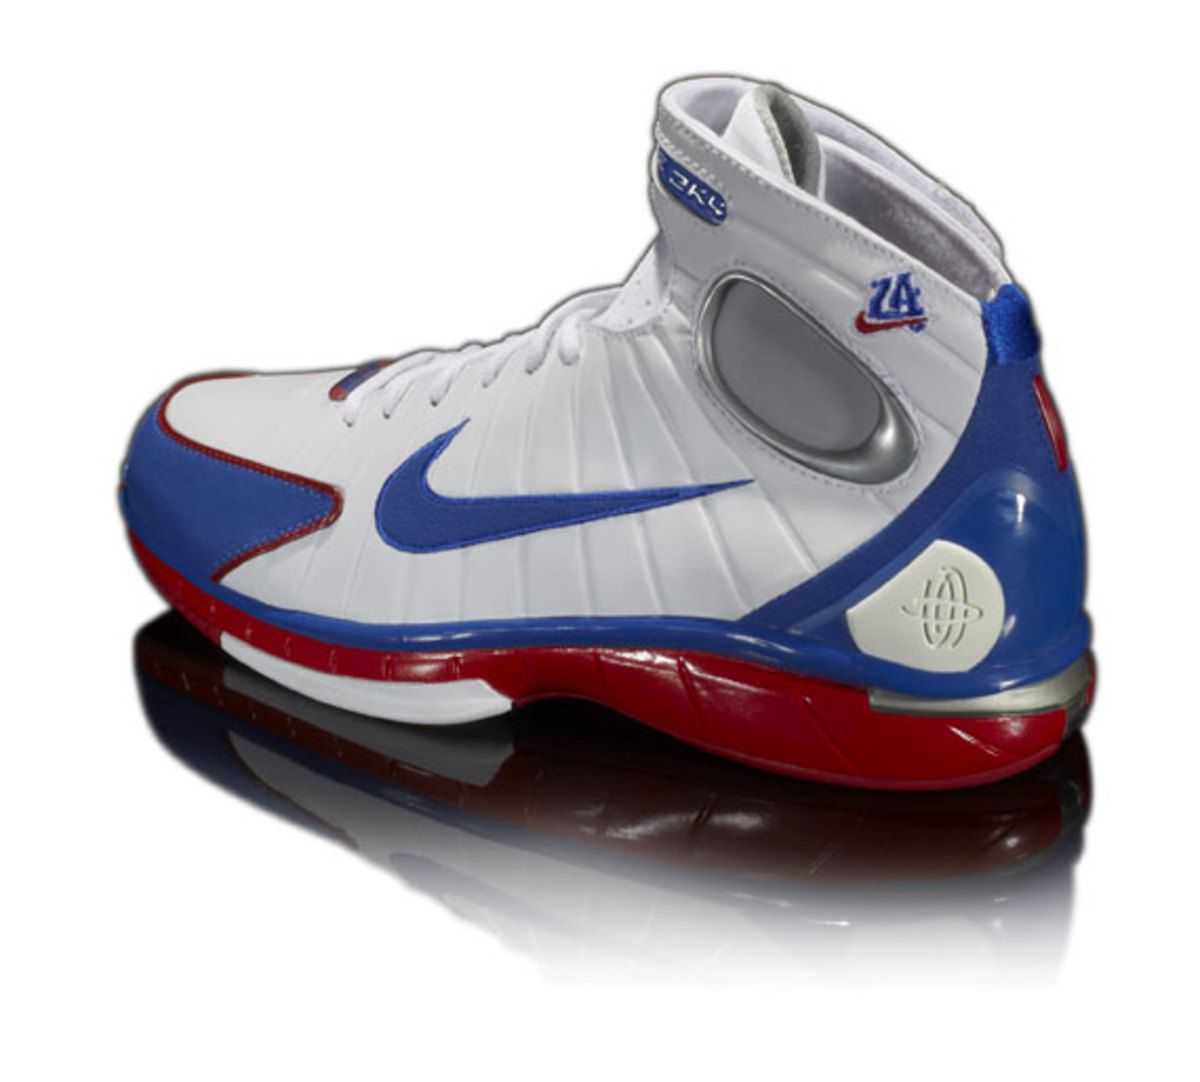 nike-basketball-1992-2012-nike-air-zoom-huarache-27